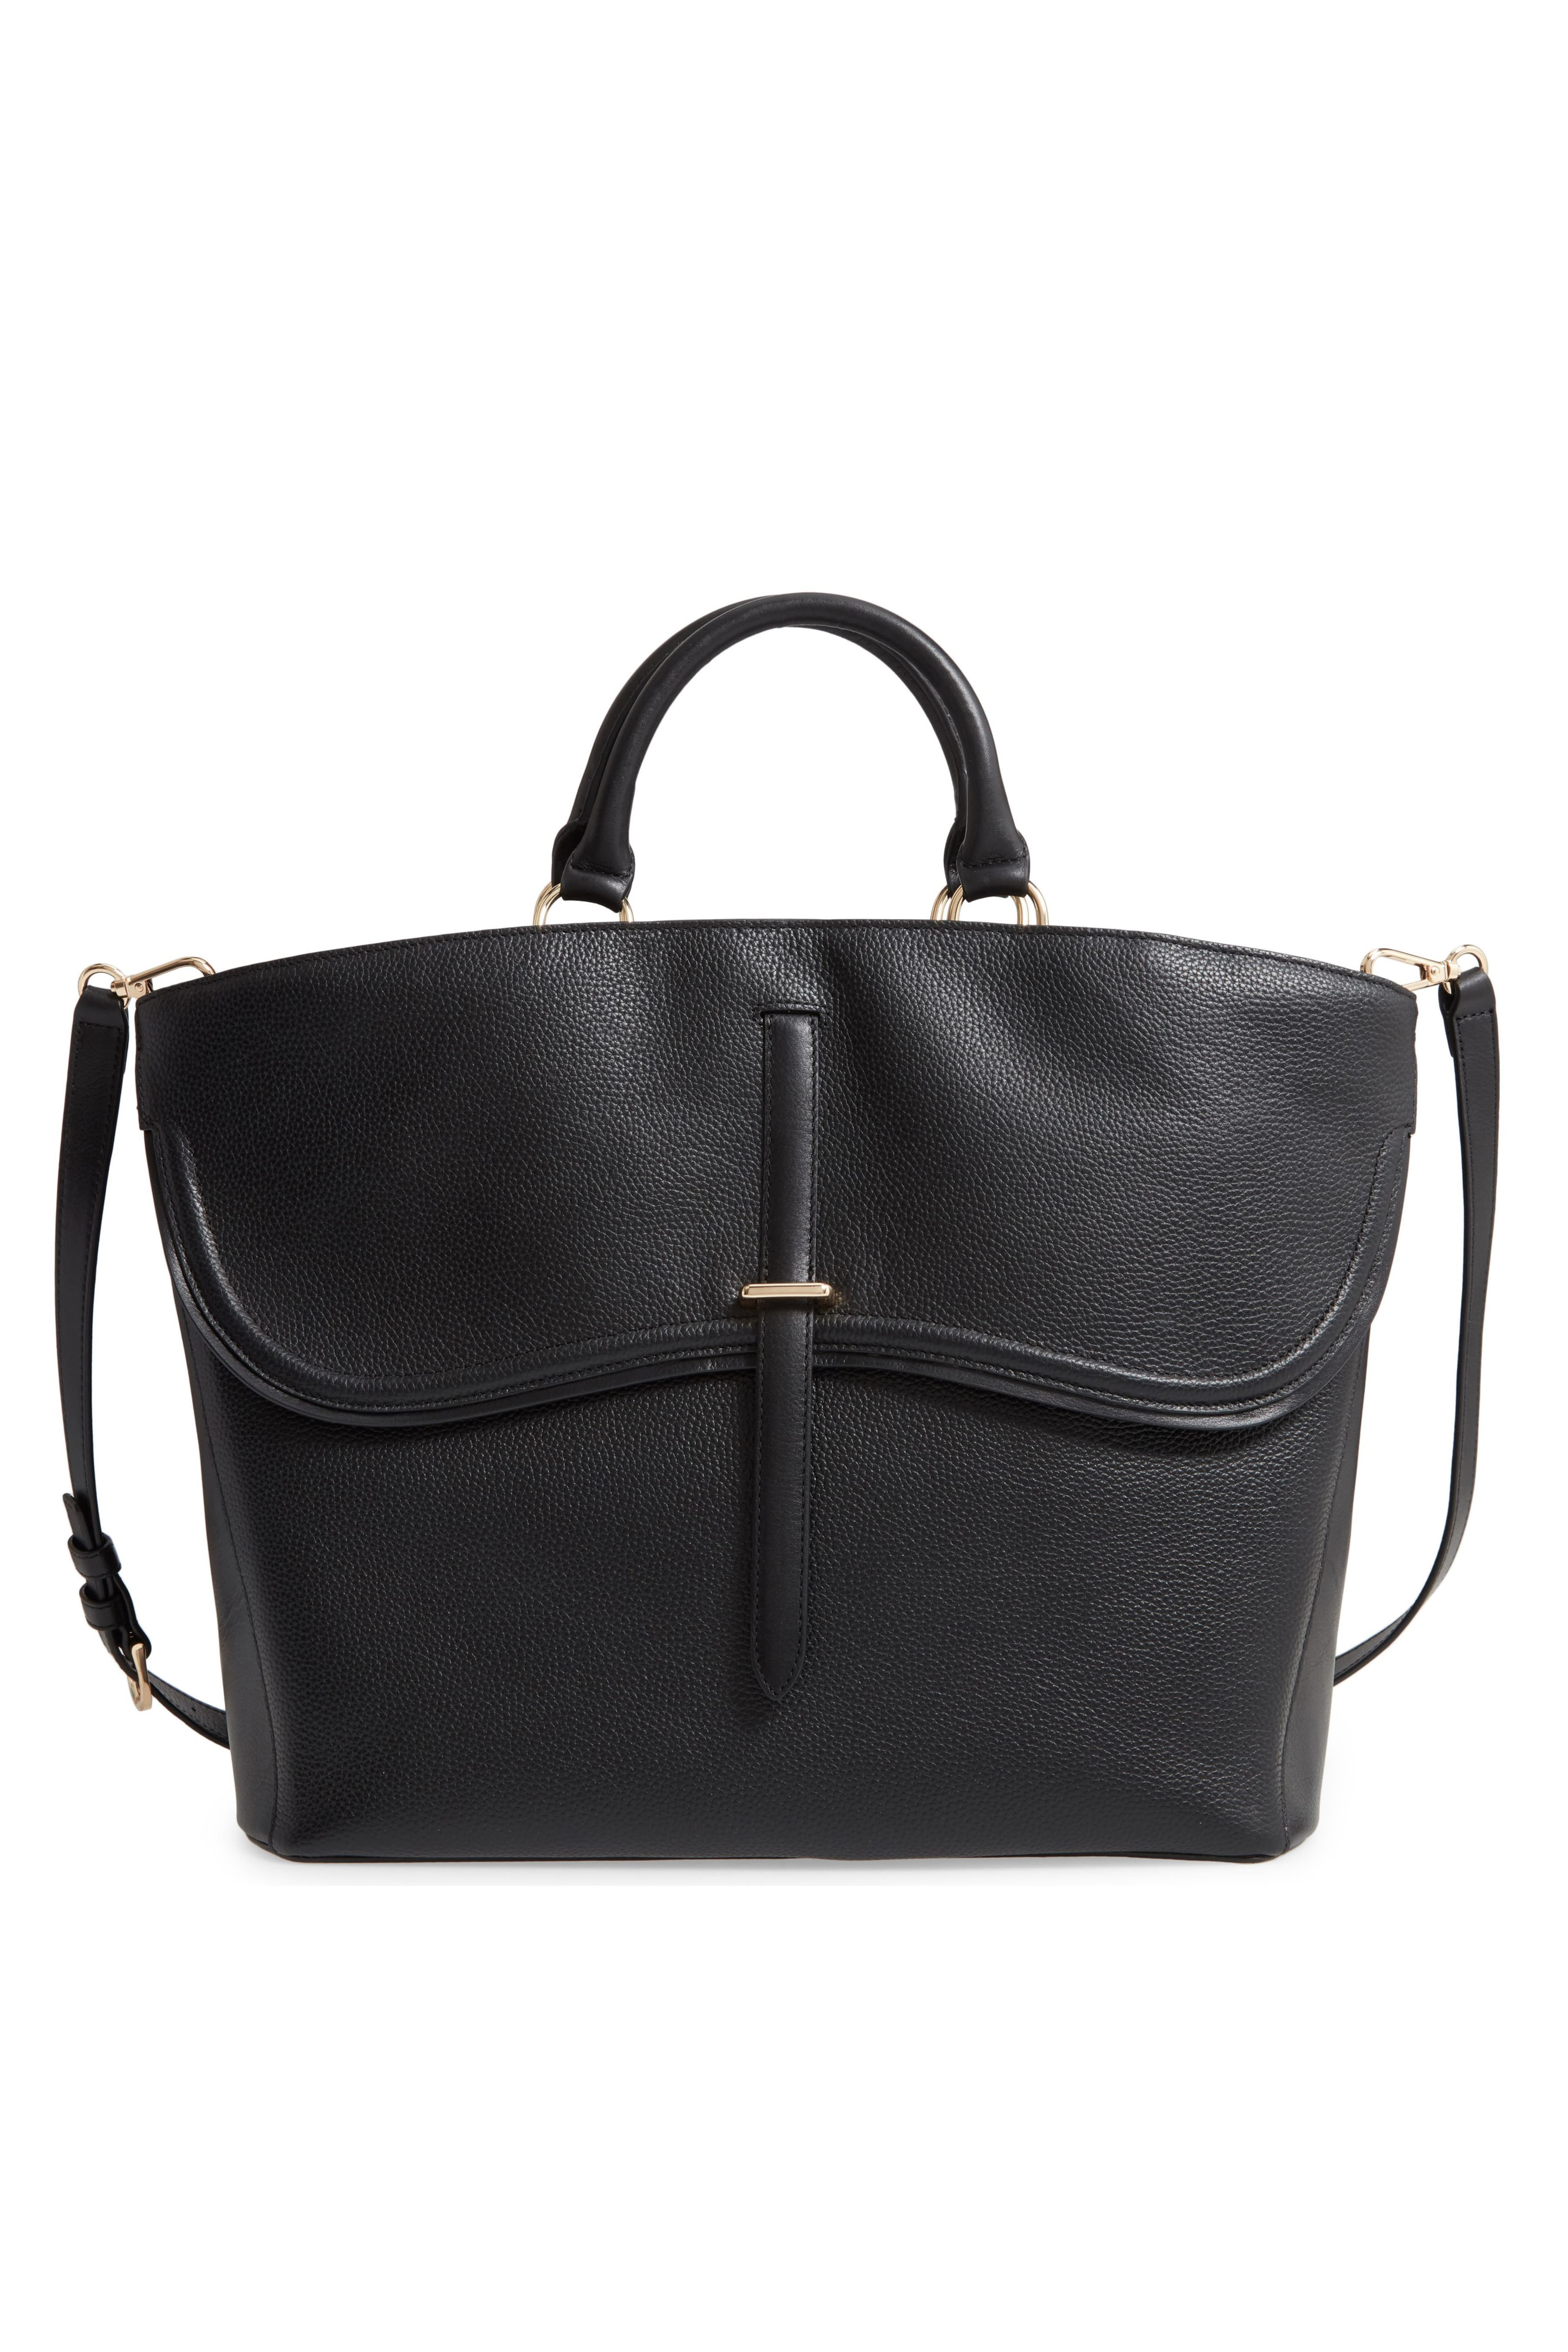 Work Bags For Professional Women